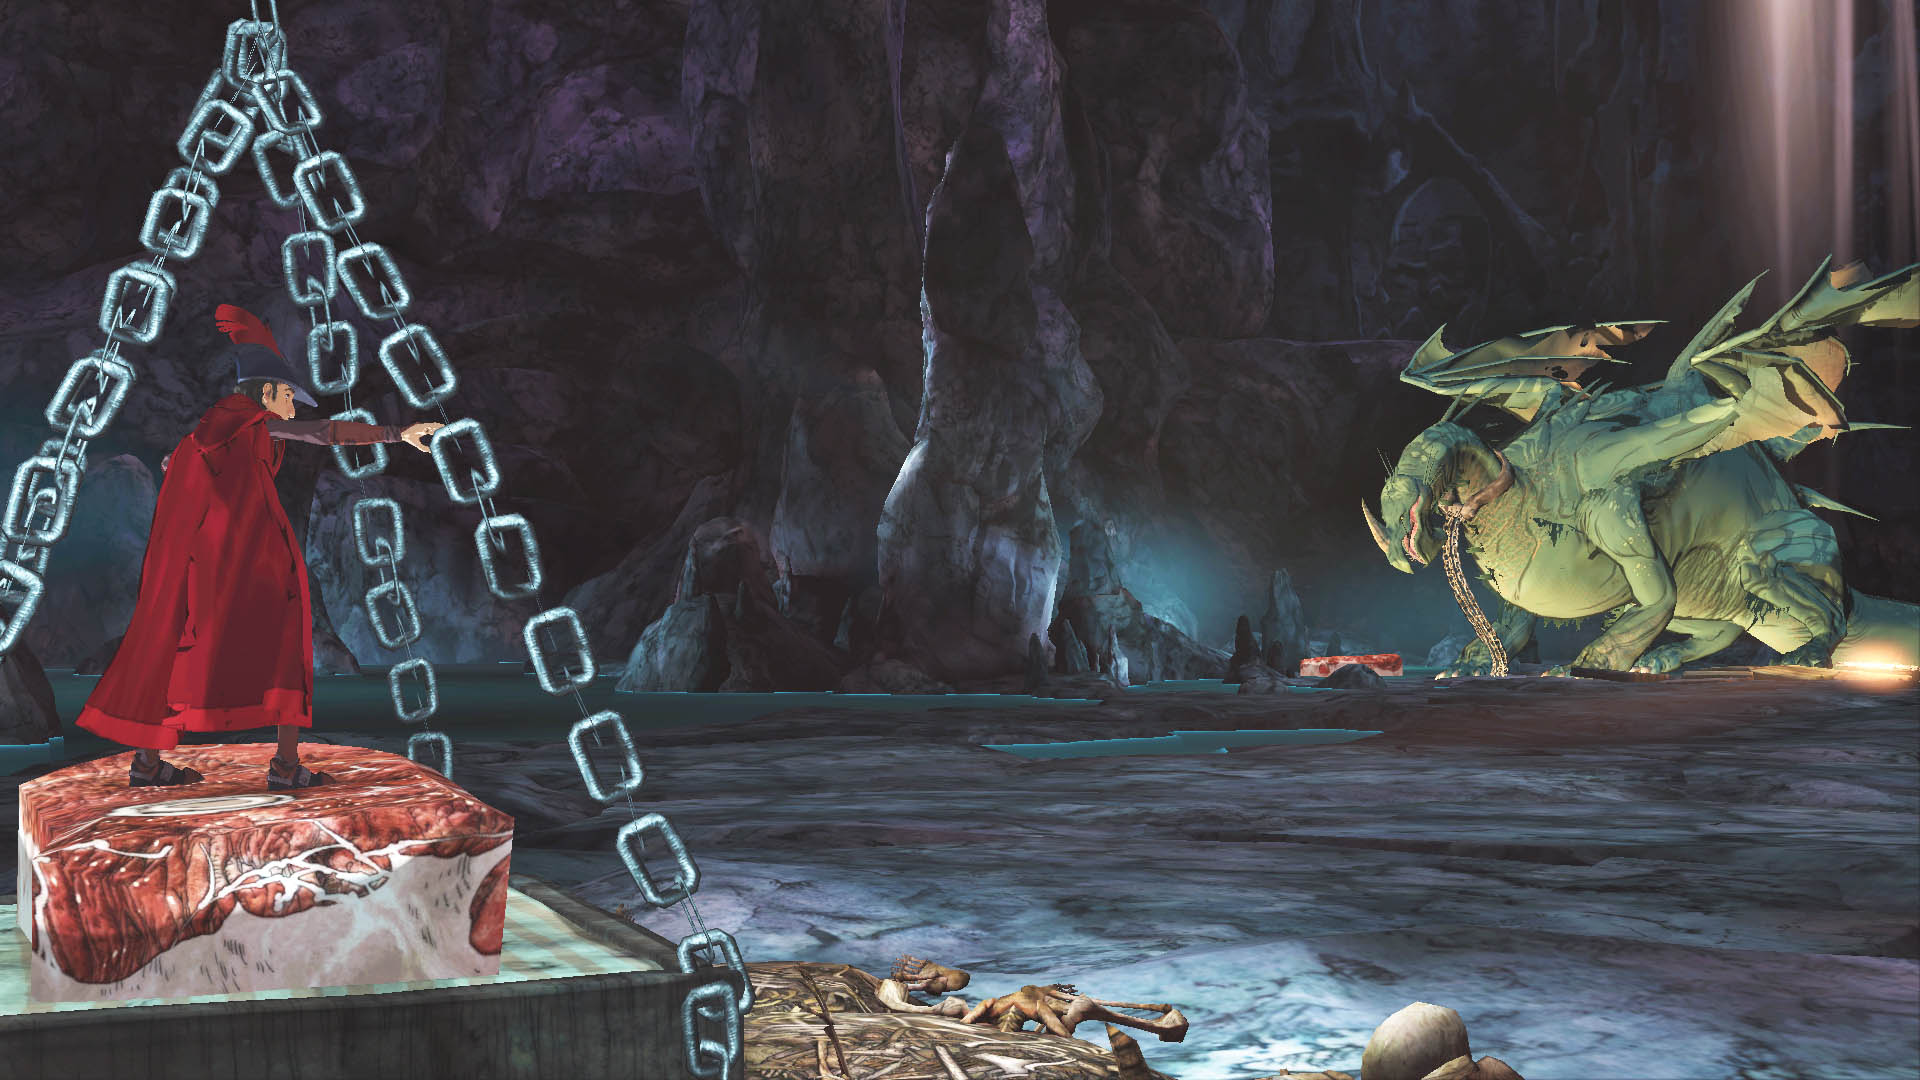 King's Quest Screenshot 2